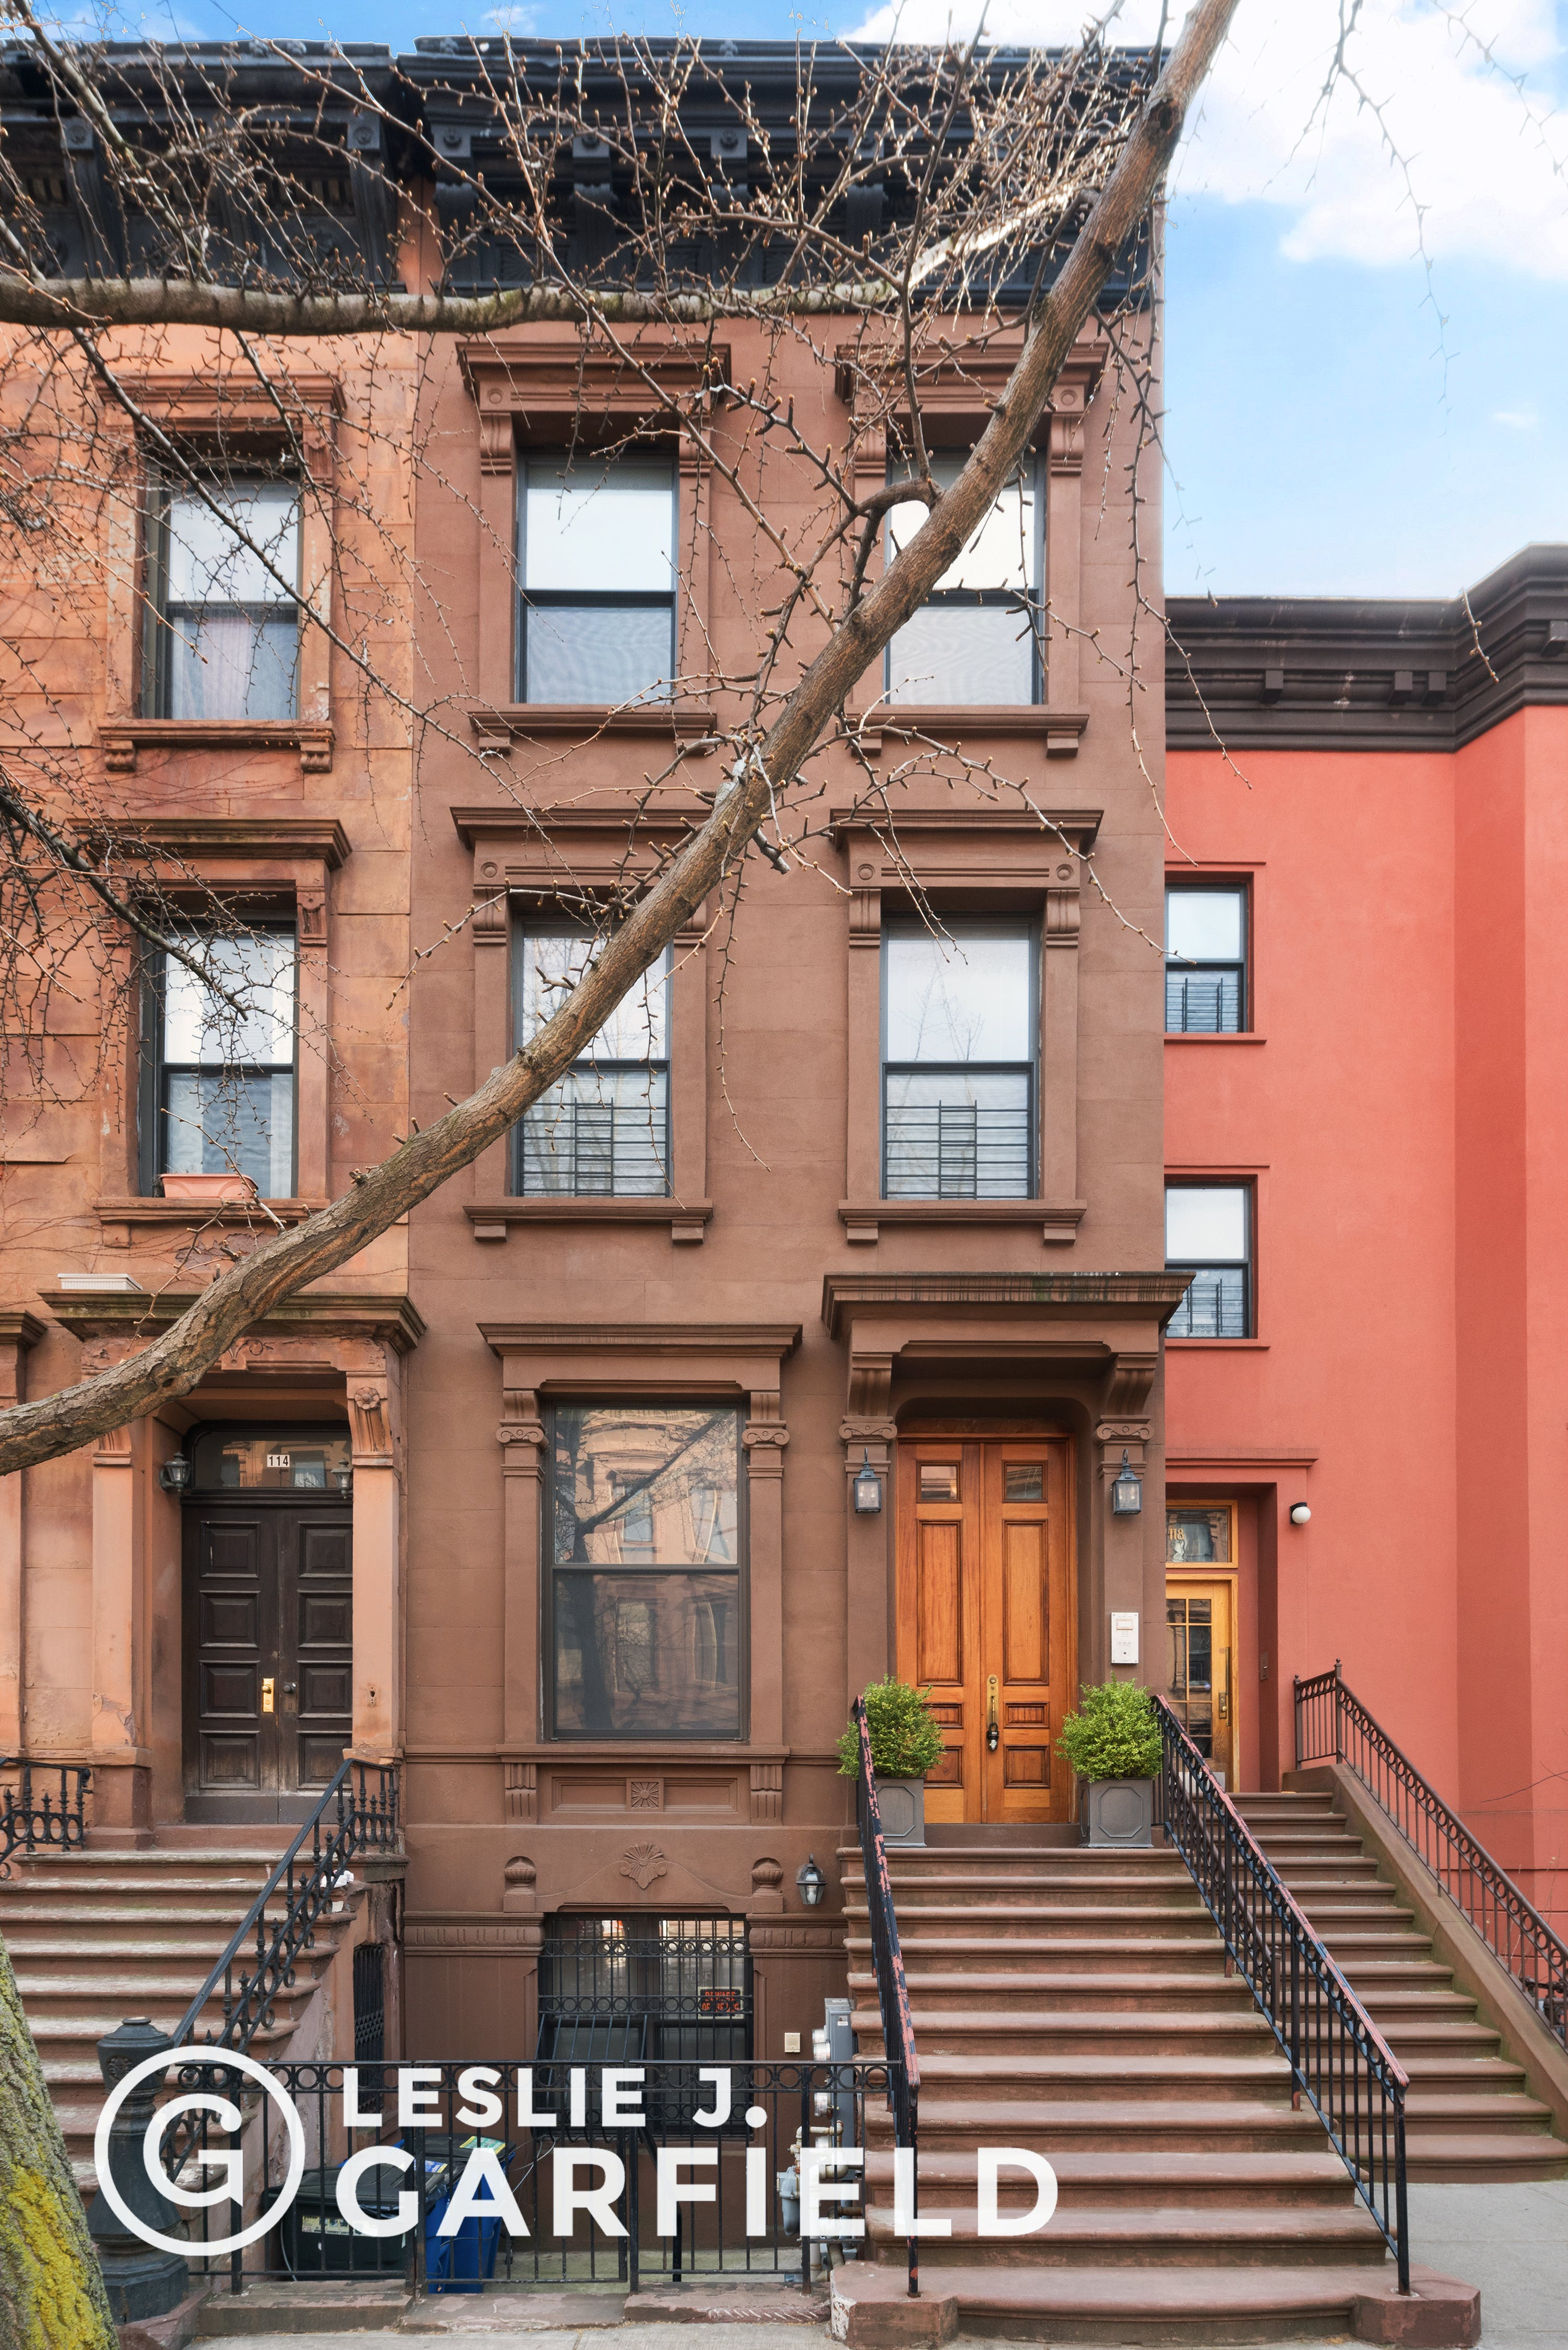 116 West 130th Street - 1dae02eb-dd72-426b-826d-0ece75c02207 - New York City Townhouse Real Estate